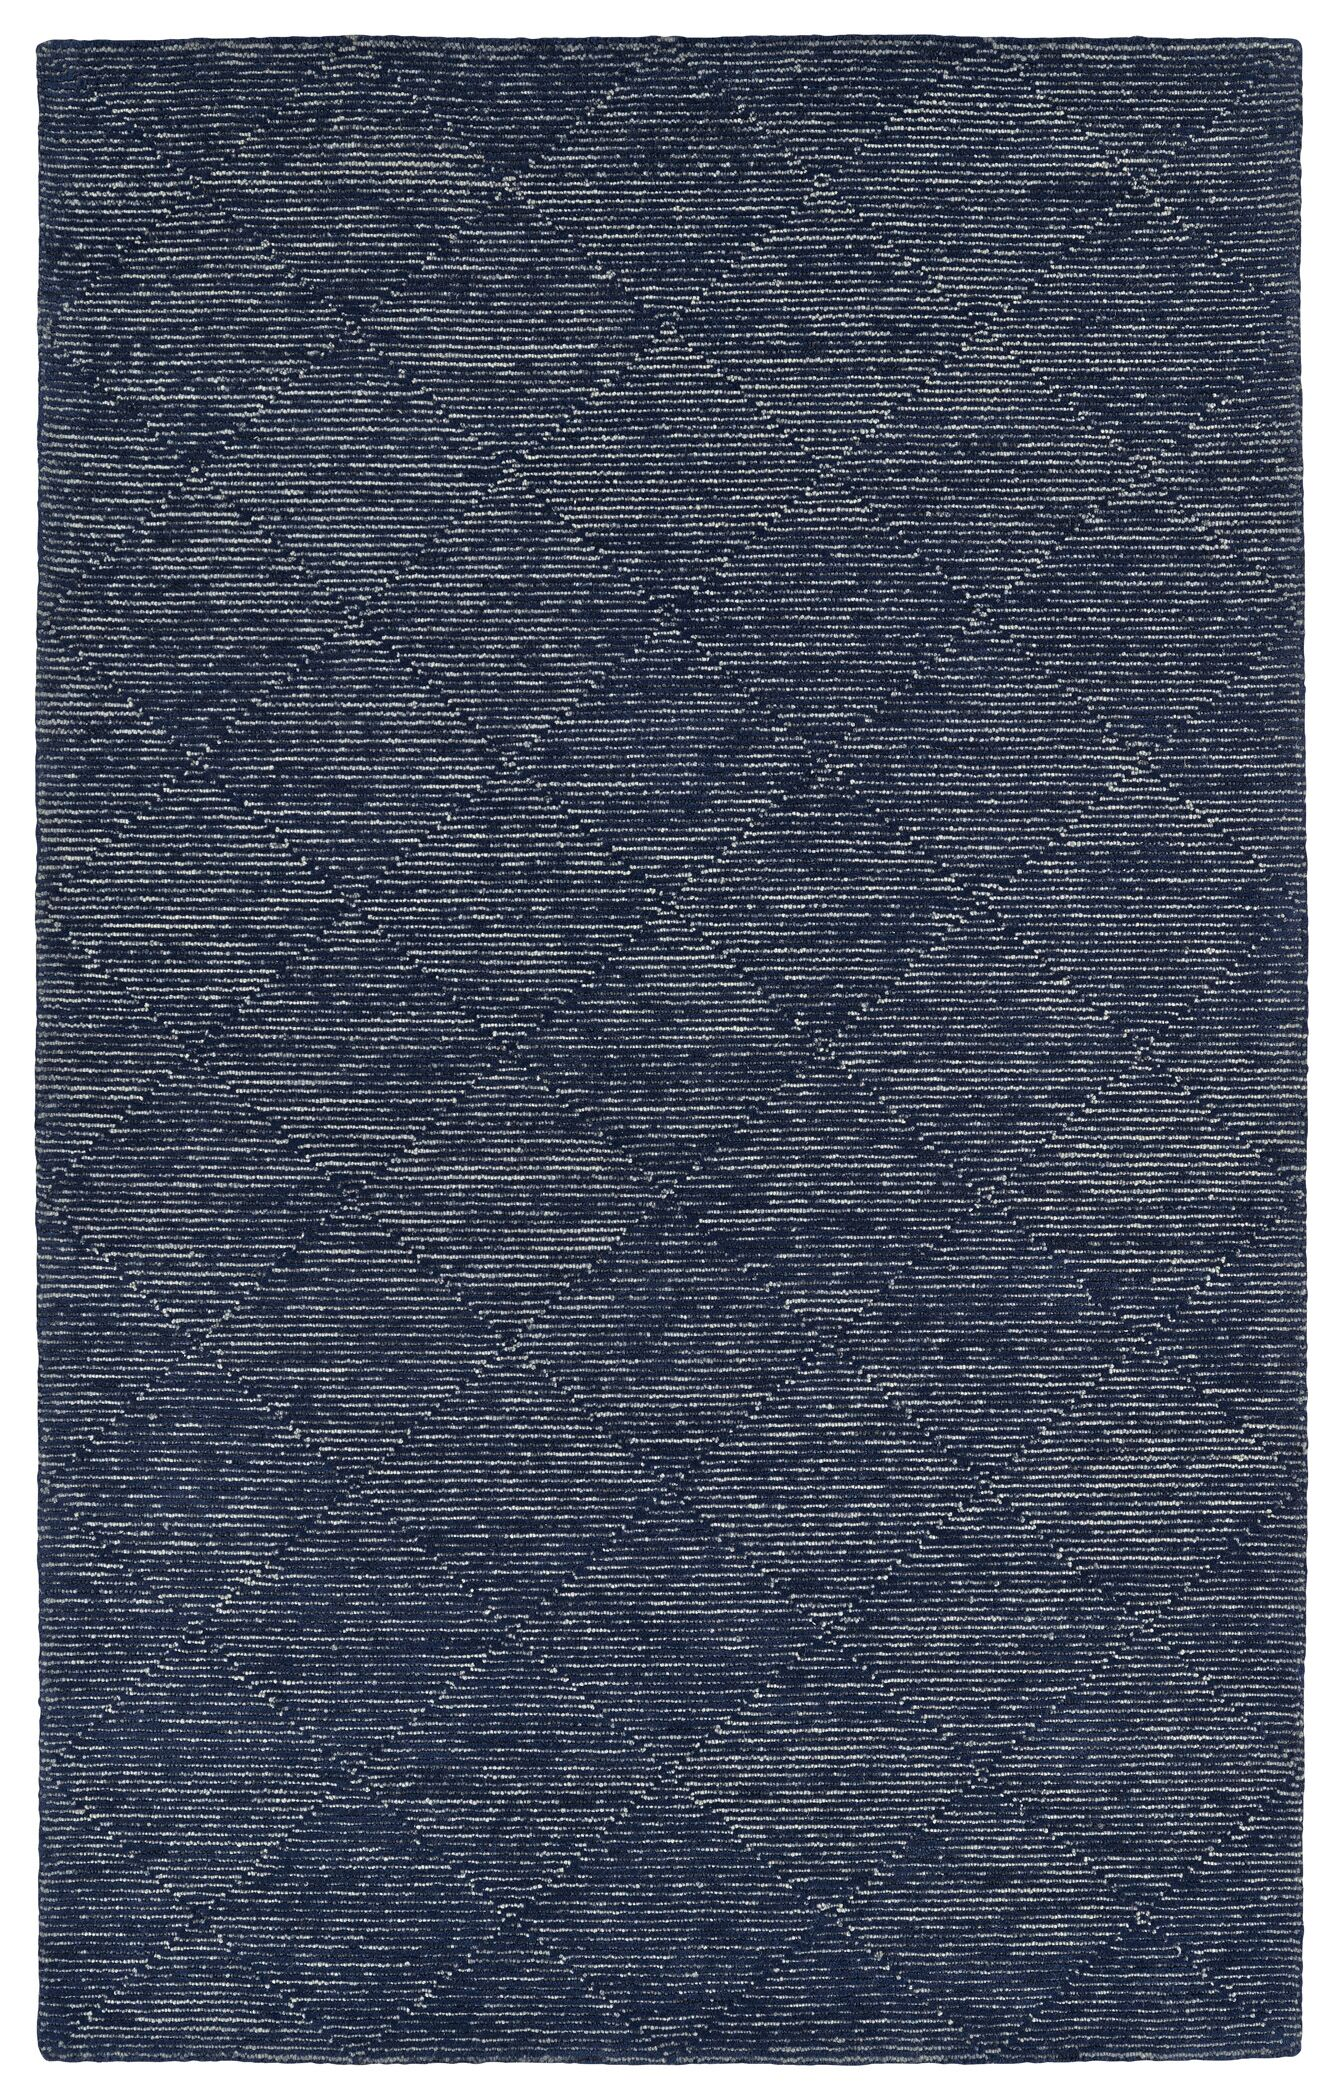 Cilegon Handmade Navy Area Rug Rug Size: Rectangle 5' x 7'9